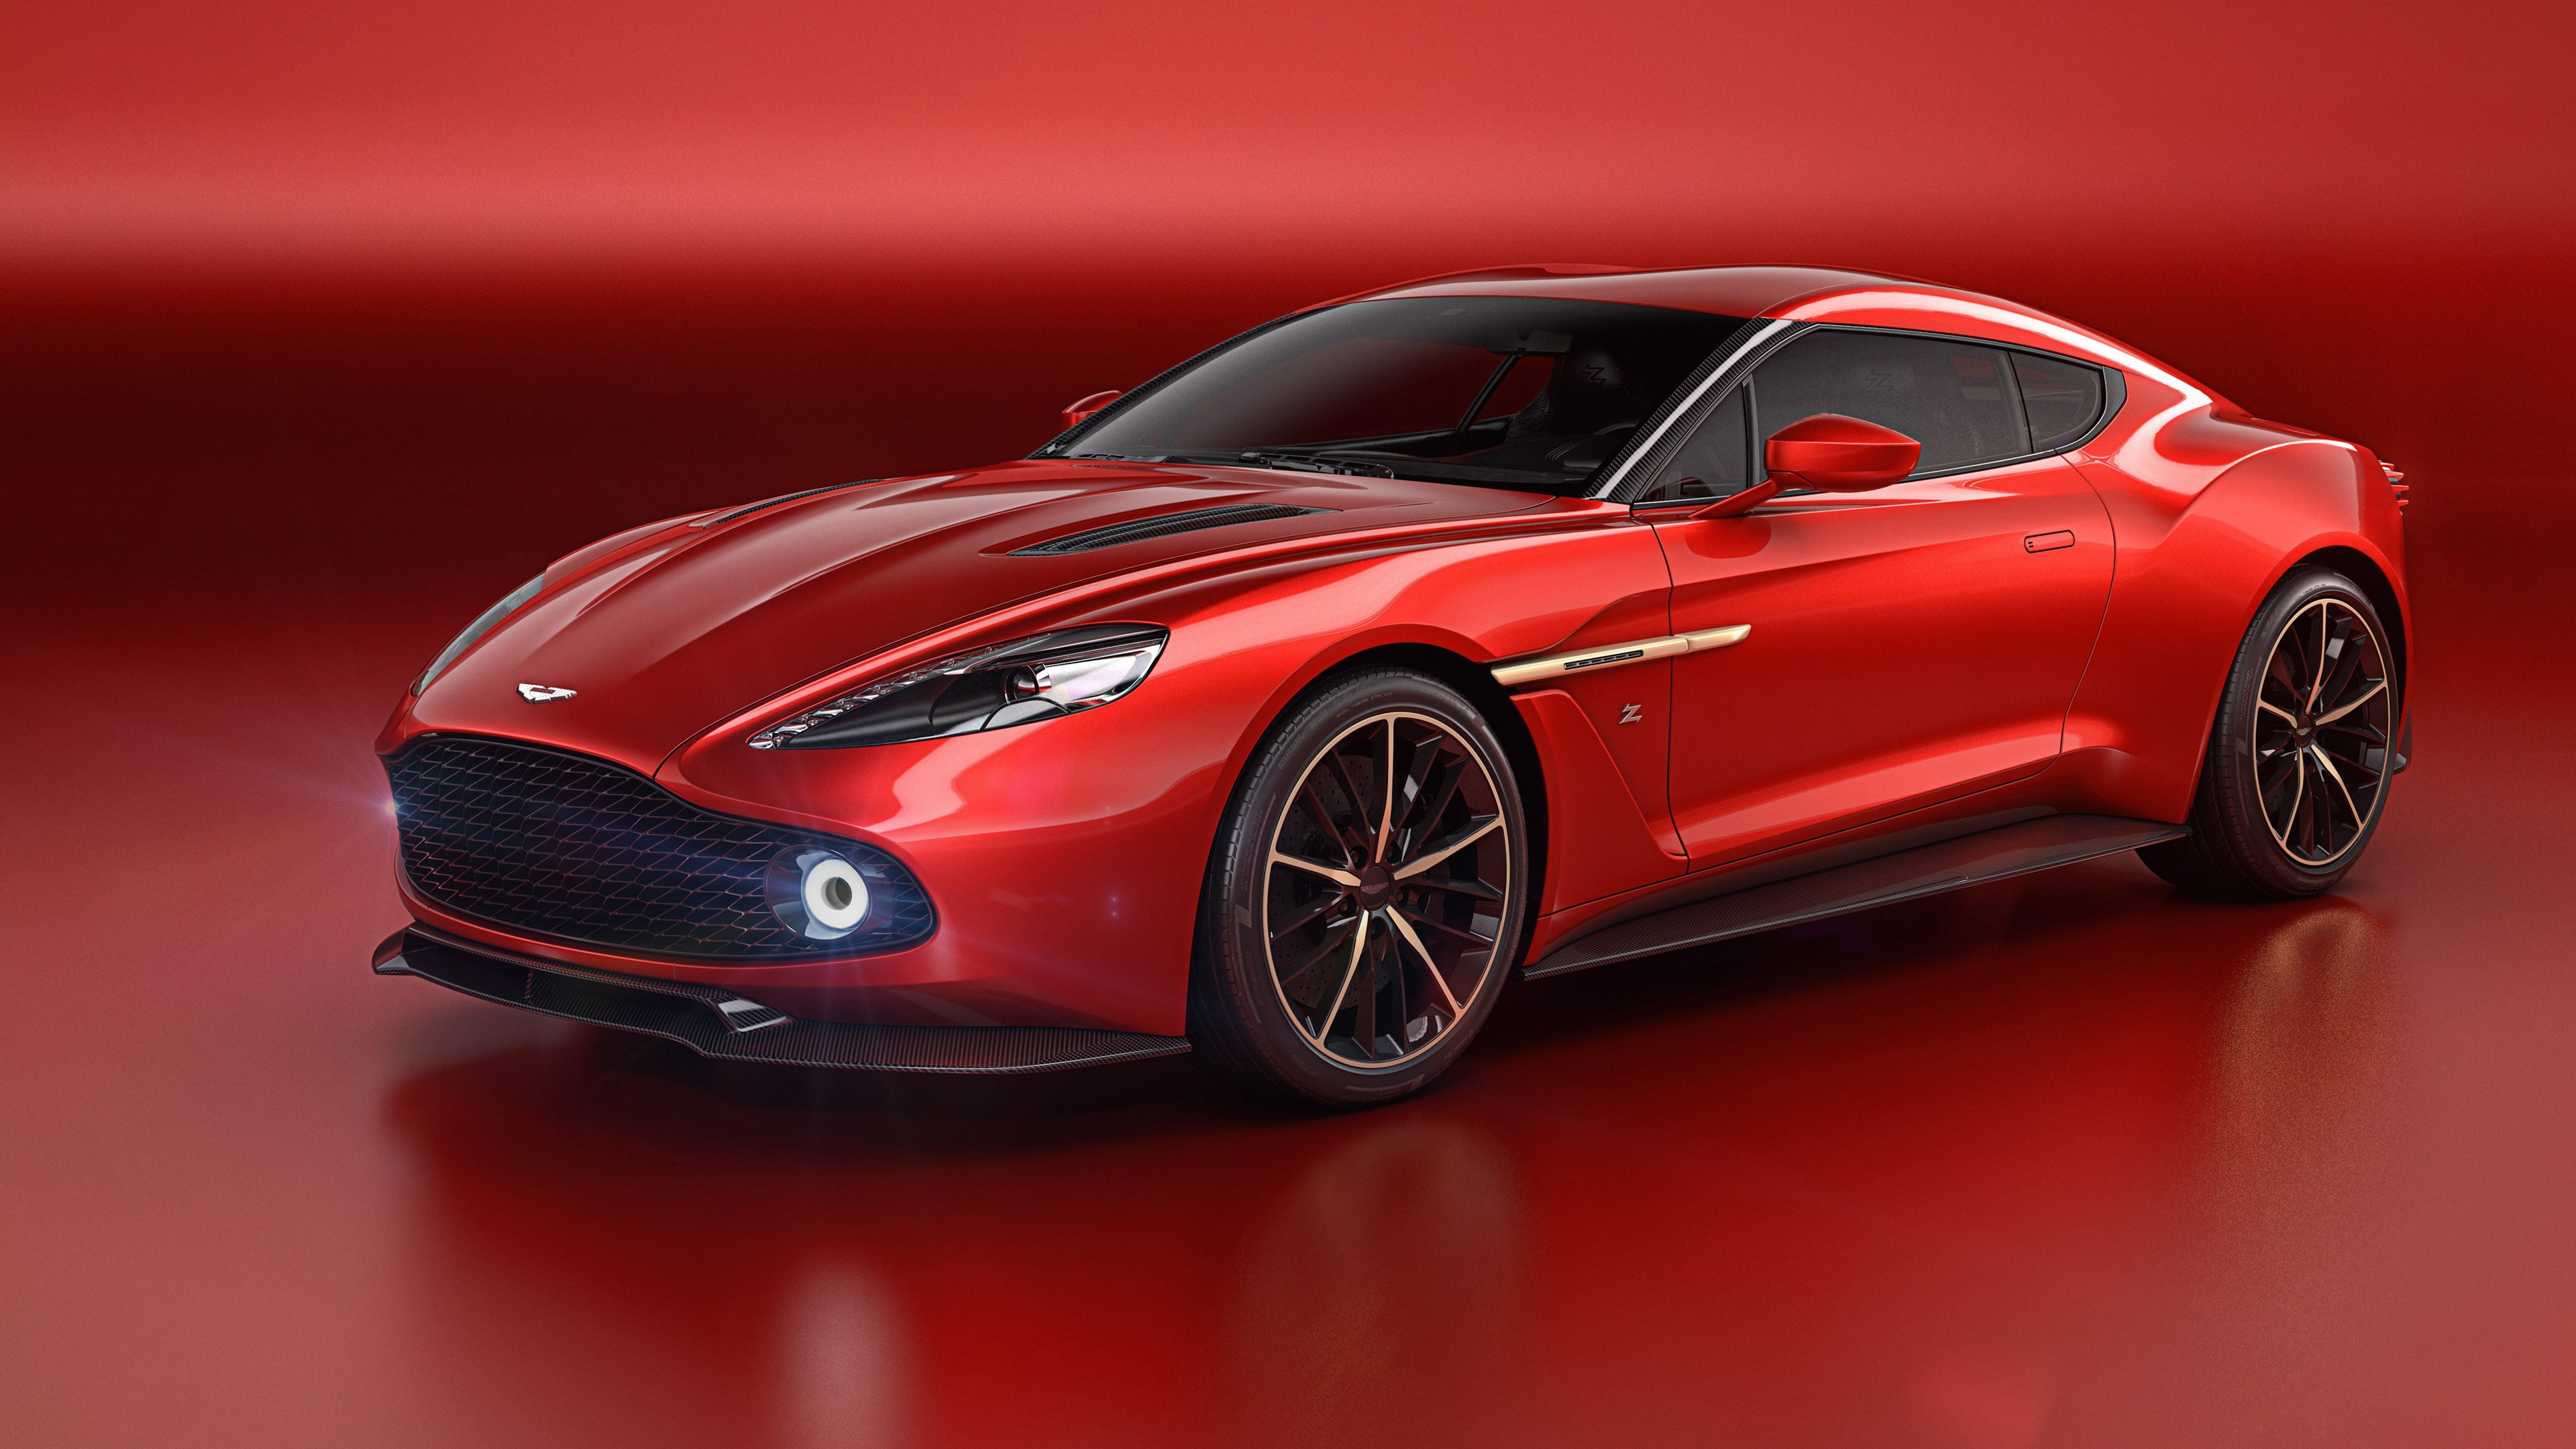 Aston Martin Vanquish Zagato Wallpapers in jpg format for 3840x2160